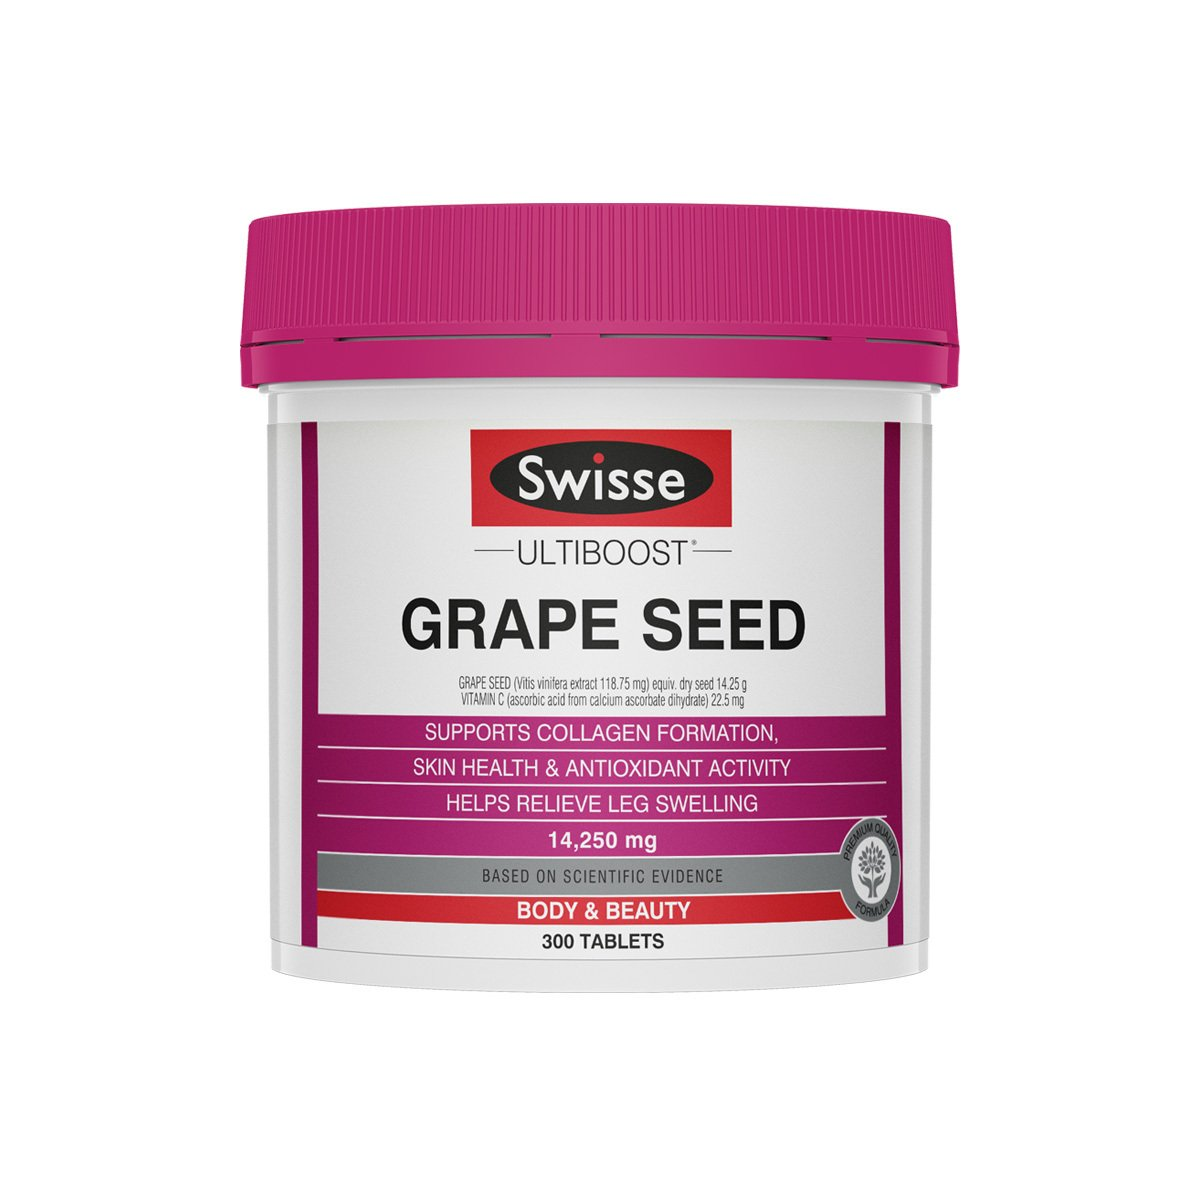 Pack shot of Swisse Product Ultiboost Grape Seed 300 Tabs